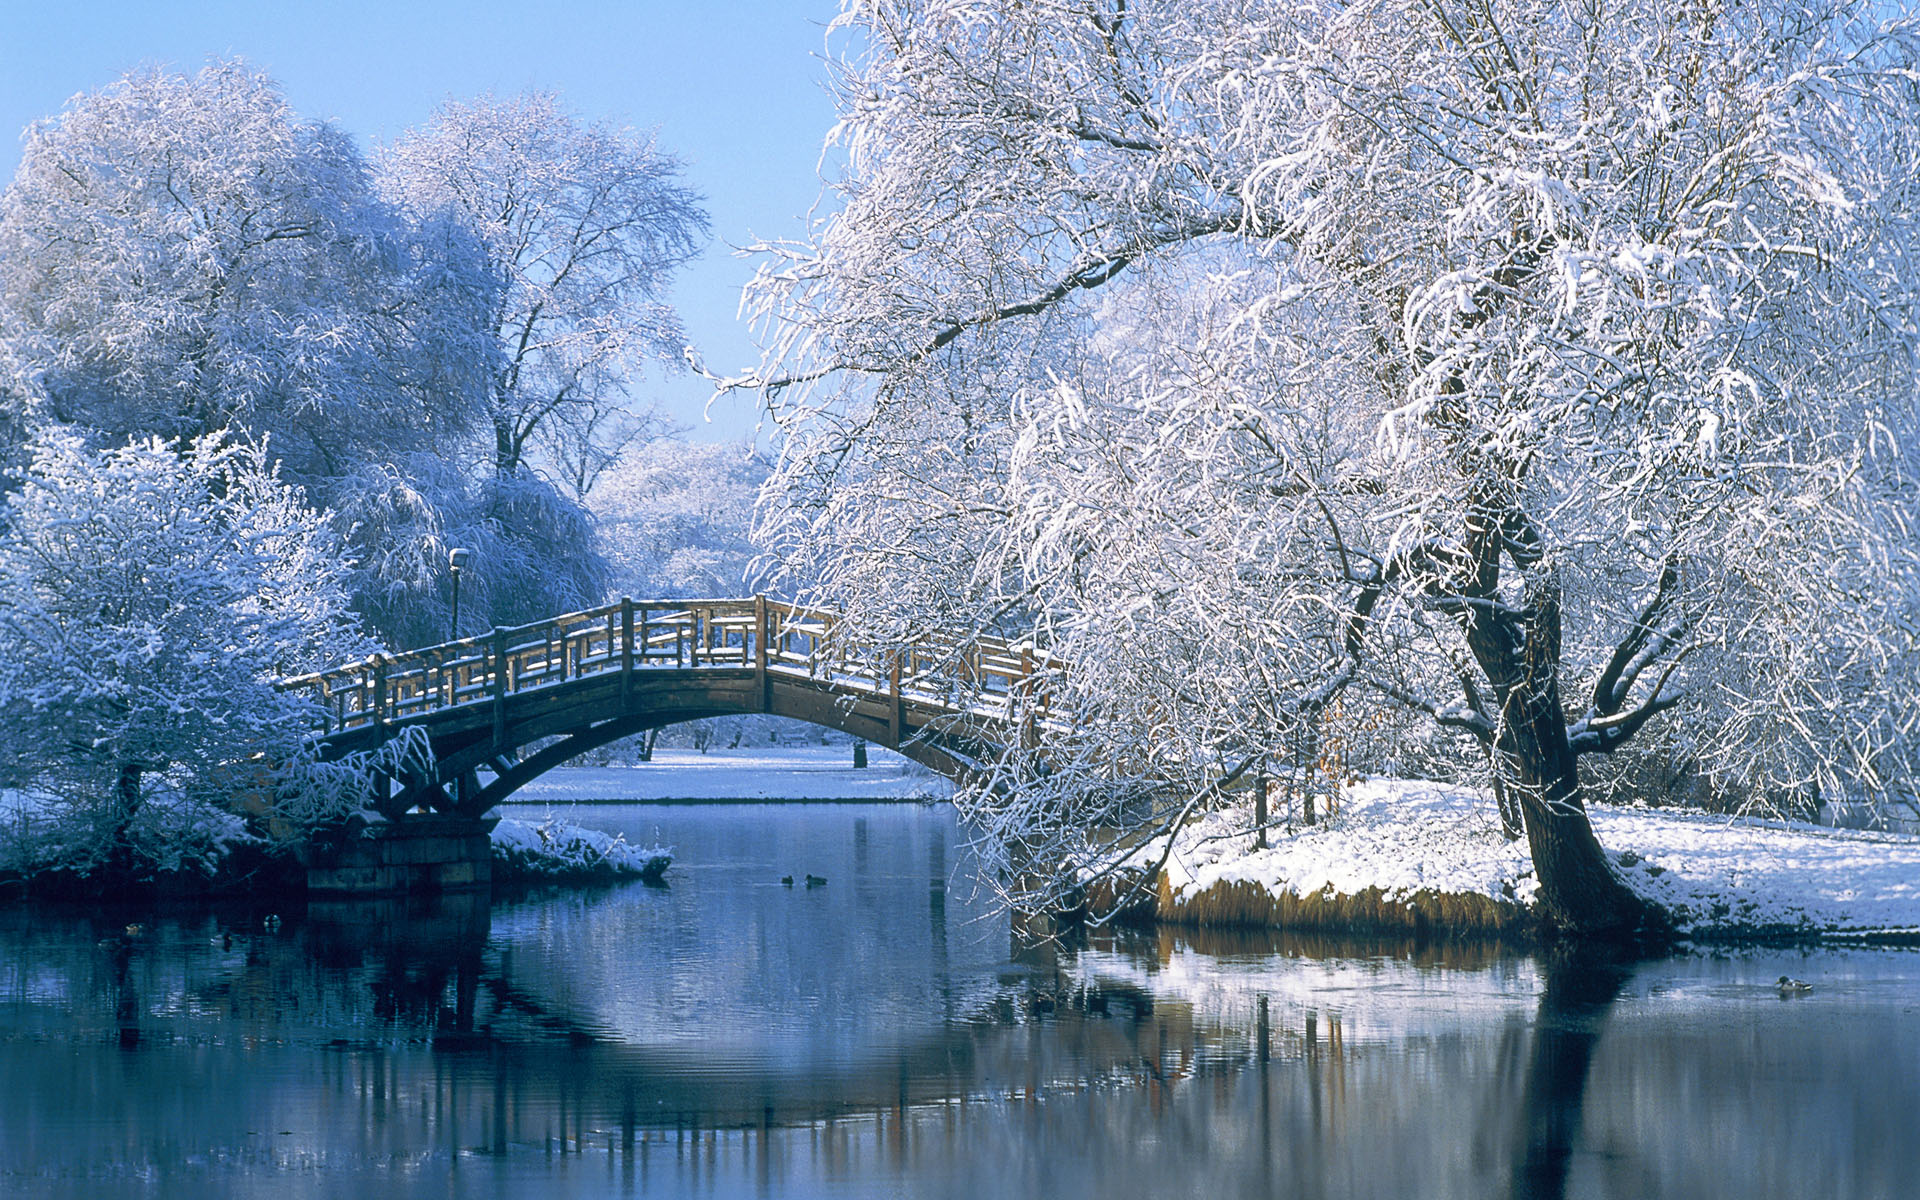 winter backgrounds wallpaper designs background desktop 1920x1200 1920x1200